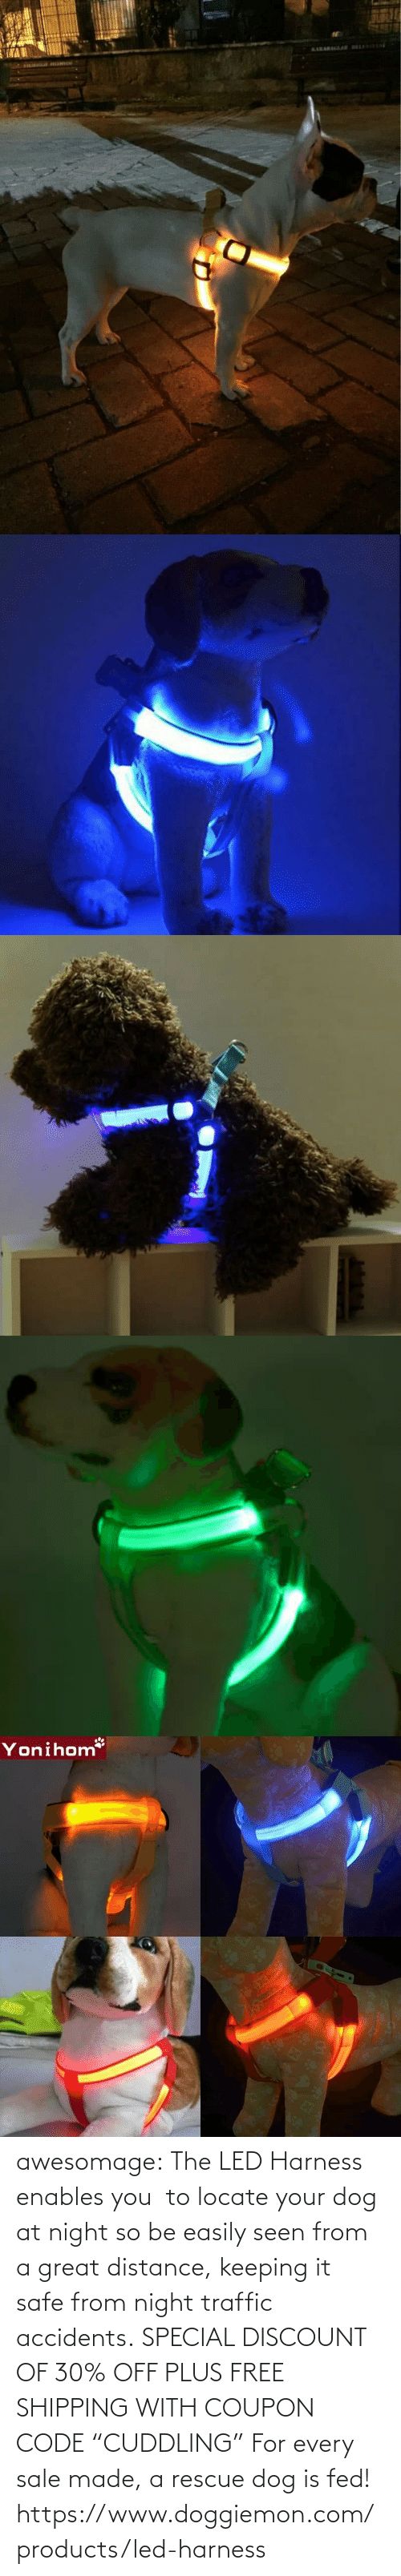 "Traffic: A1KAMAGLAR RELERVS  BILIRALLAN JOI   Yonihom  E3  X1  EX awesomage:   The LED Harness enables you  to locate your dog at night so be easily seen from a great distance, keeping it safe from night traffic accidents. SPECIAL DISCOUNT OF 30% OFF PLUS FREE SHIPPING WITH COUPON CODE ""CUDDLING"" For every sale made, a rescue dog is fed!   https://www.doggiemon.com/products/led-harness"